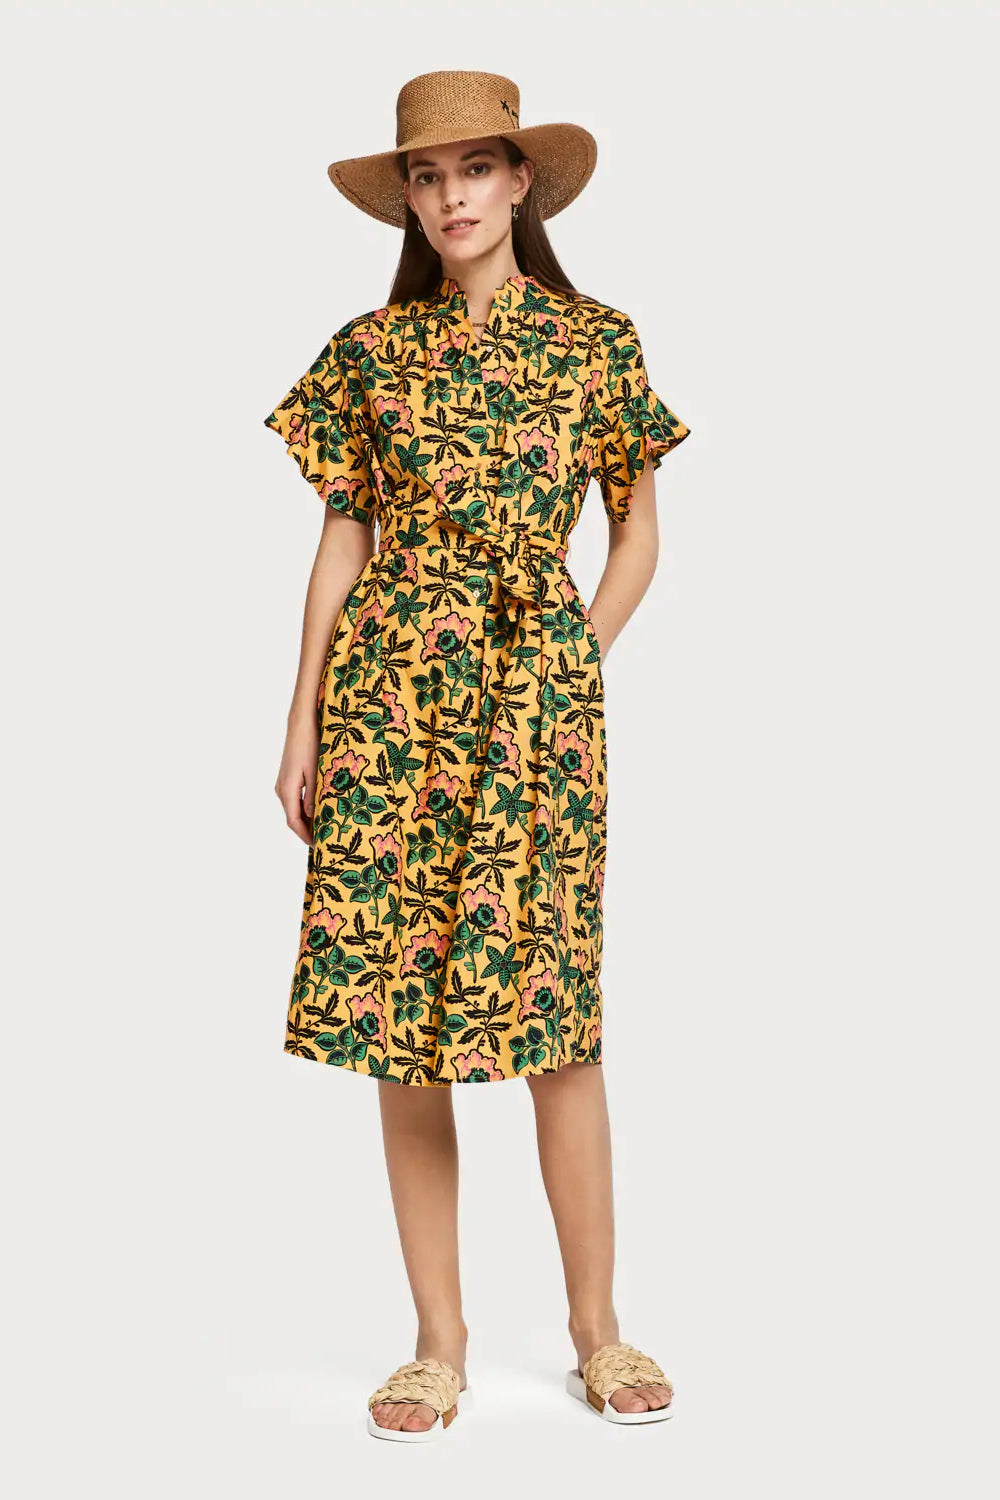 SCOTCH AND SODA - Midi Cotton Dress online at PAYA boutique